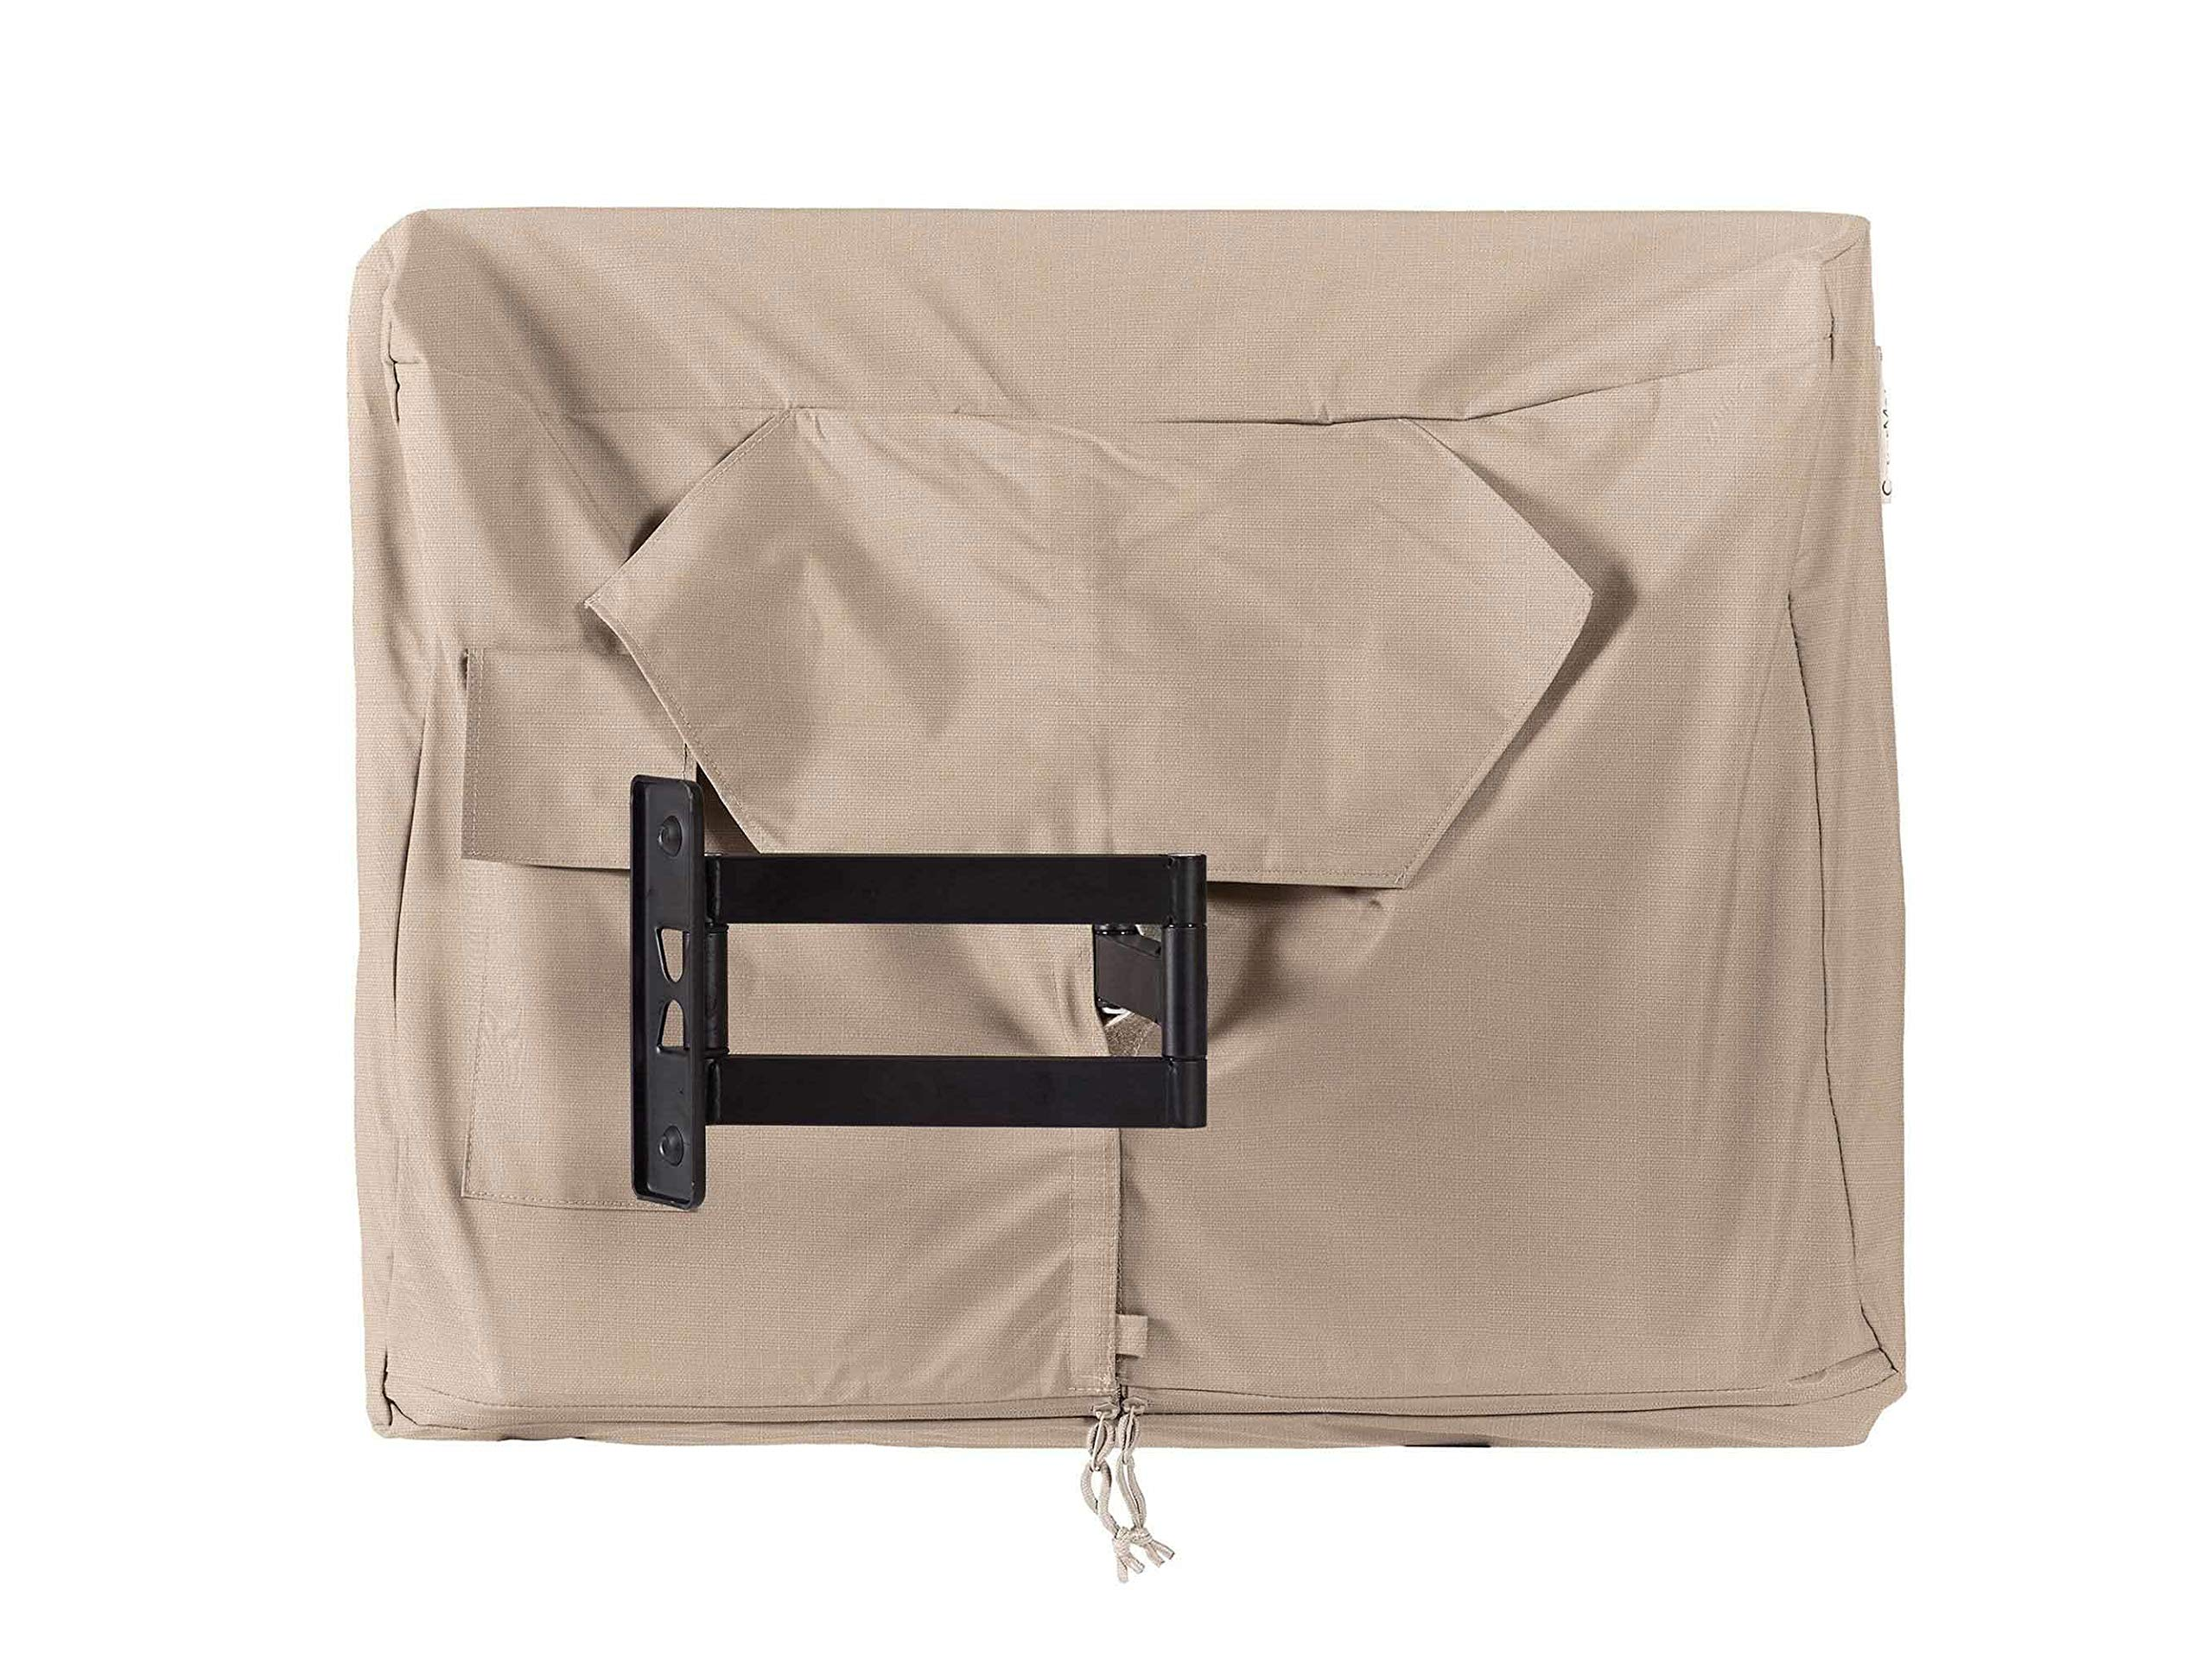 Covermates - Outdoor TV Cover - Fits 50 to 54 Inch TV's - Ultima - 600 Denier Fade Resistant Polyester - Full Coverage - Interior Fleece Lining - 7 YR Warranty - Water Resistant - Ripstop Tan by Covermates